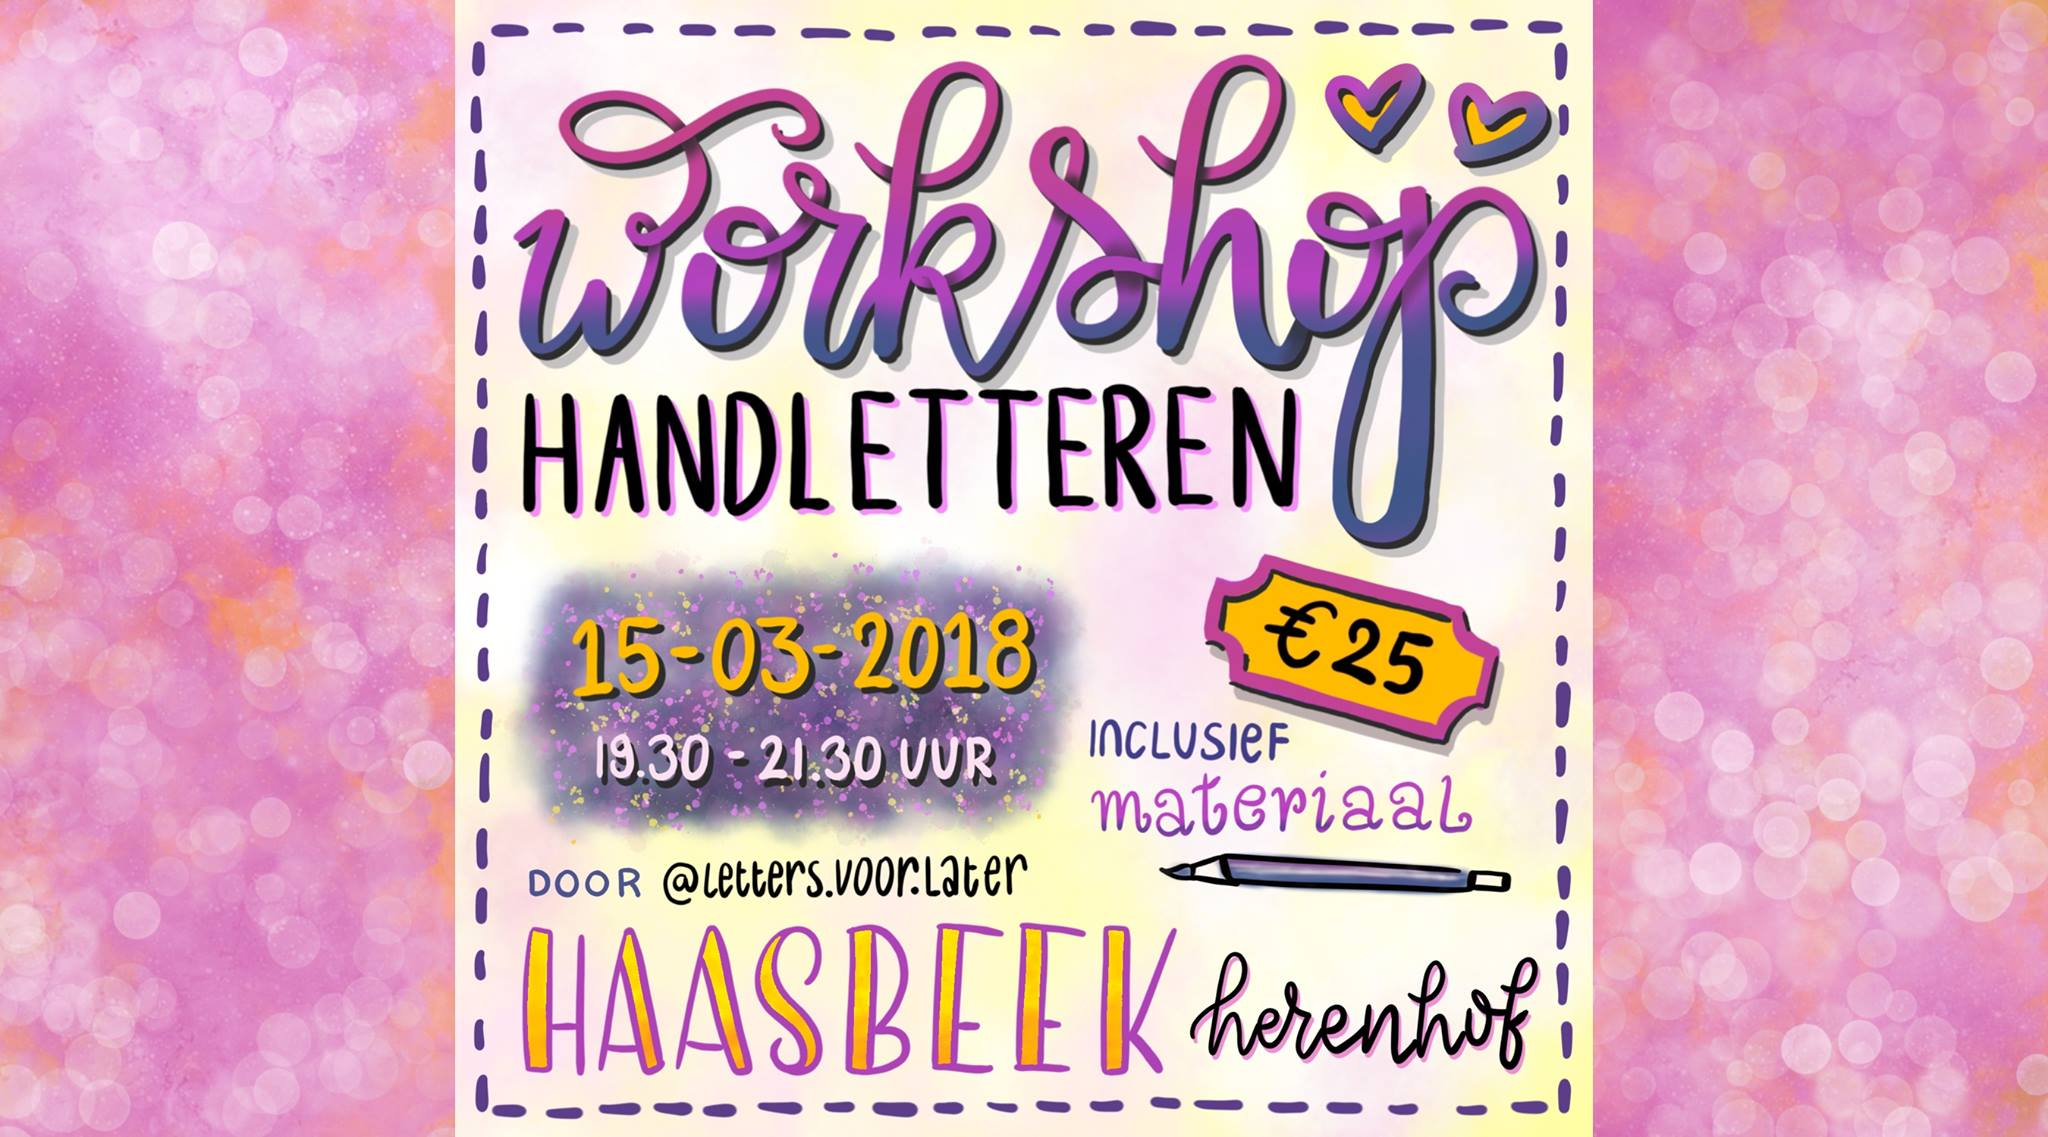 Workshop Handletteren voor beginners